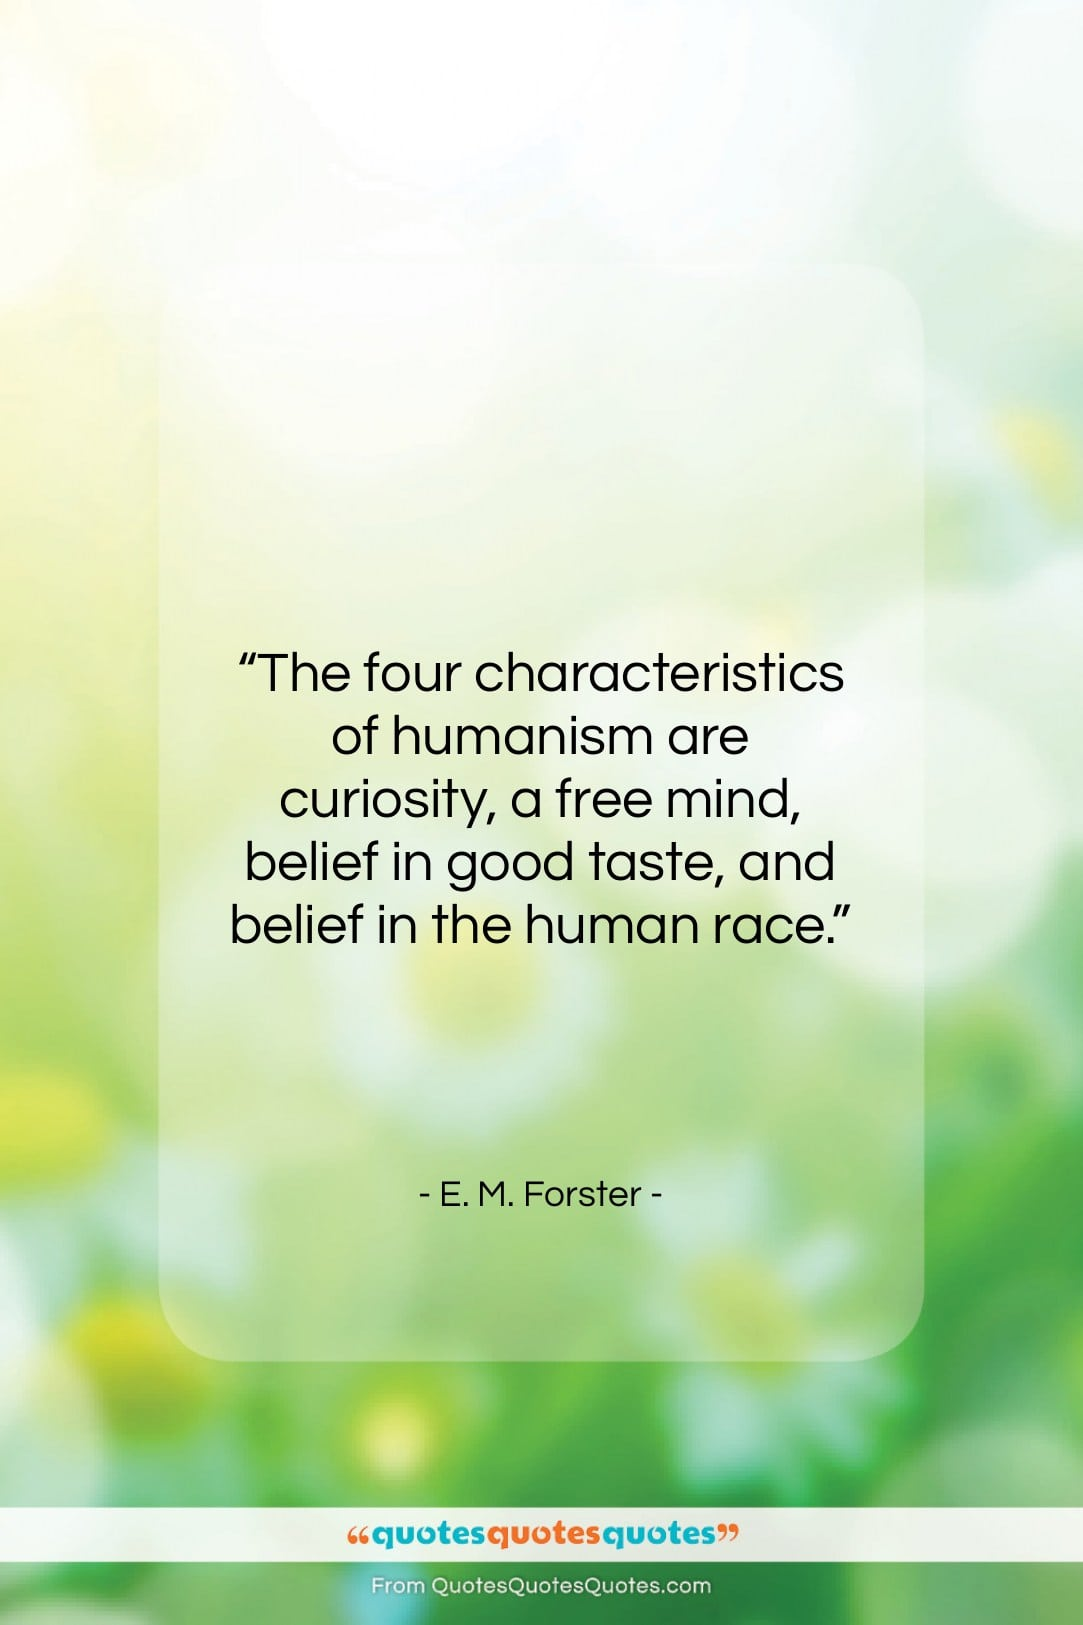 """E. M. Forster quote: """"The four characteristics of humanism are curiosity,…""""- at QuotesQuotesQuotes.com"""